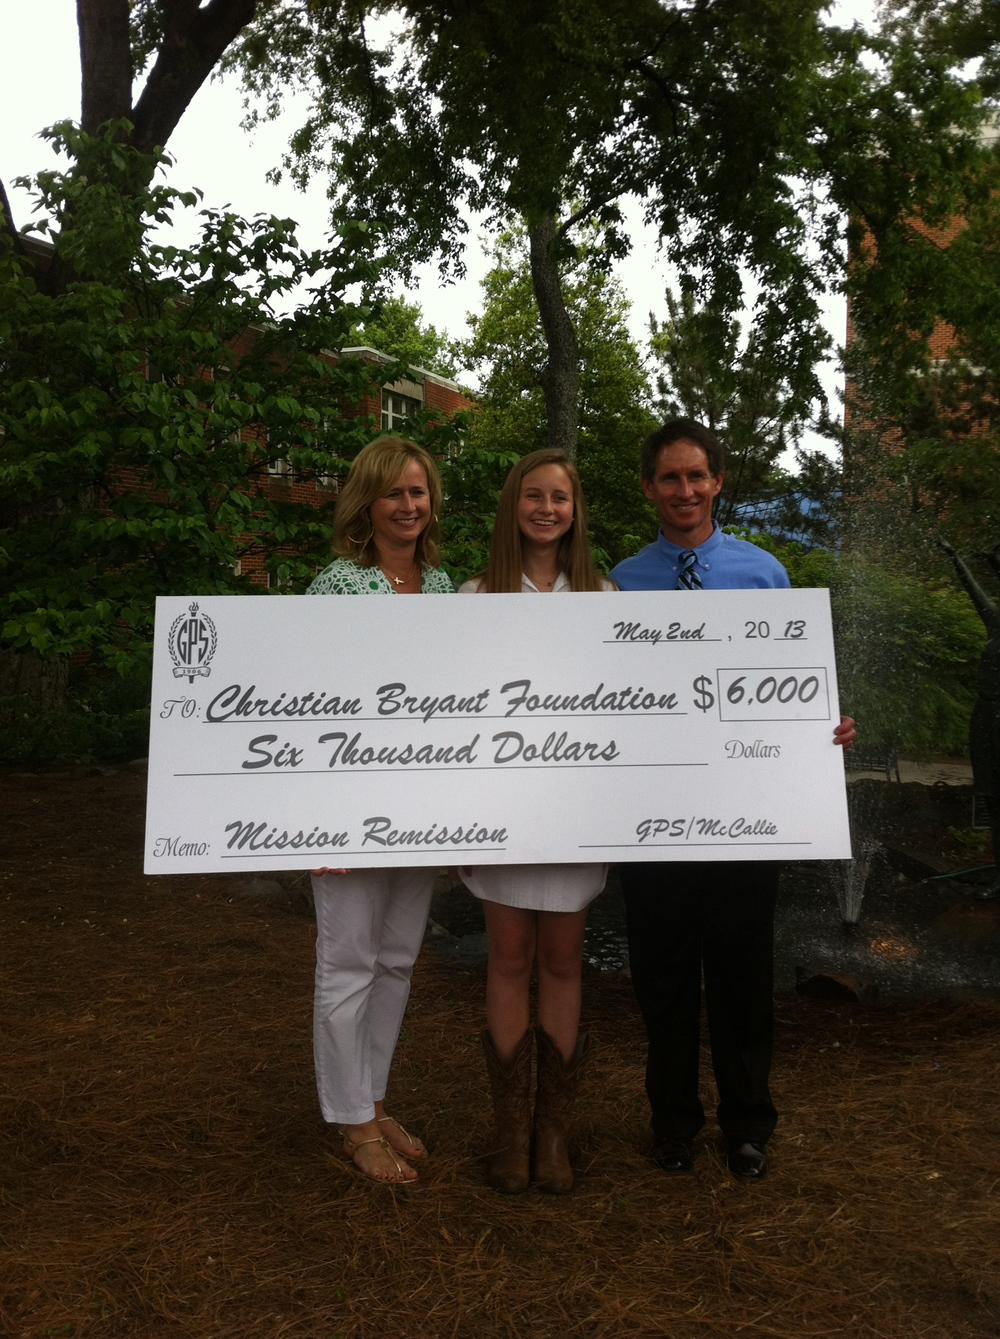 The Christian Bryant Foundation is presented with a $6,000 check from the GPS/McCallie Mission Remission